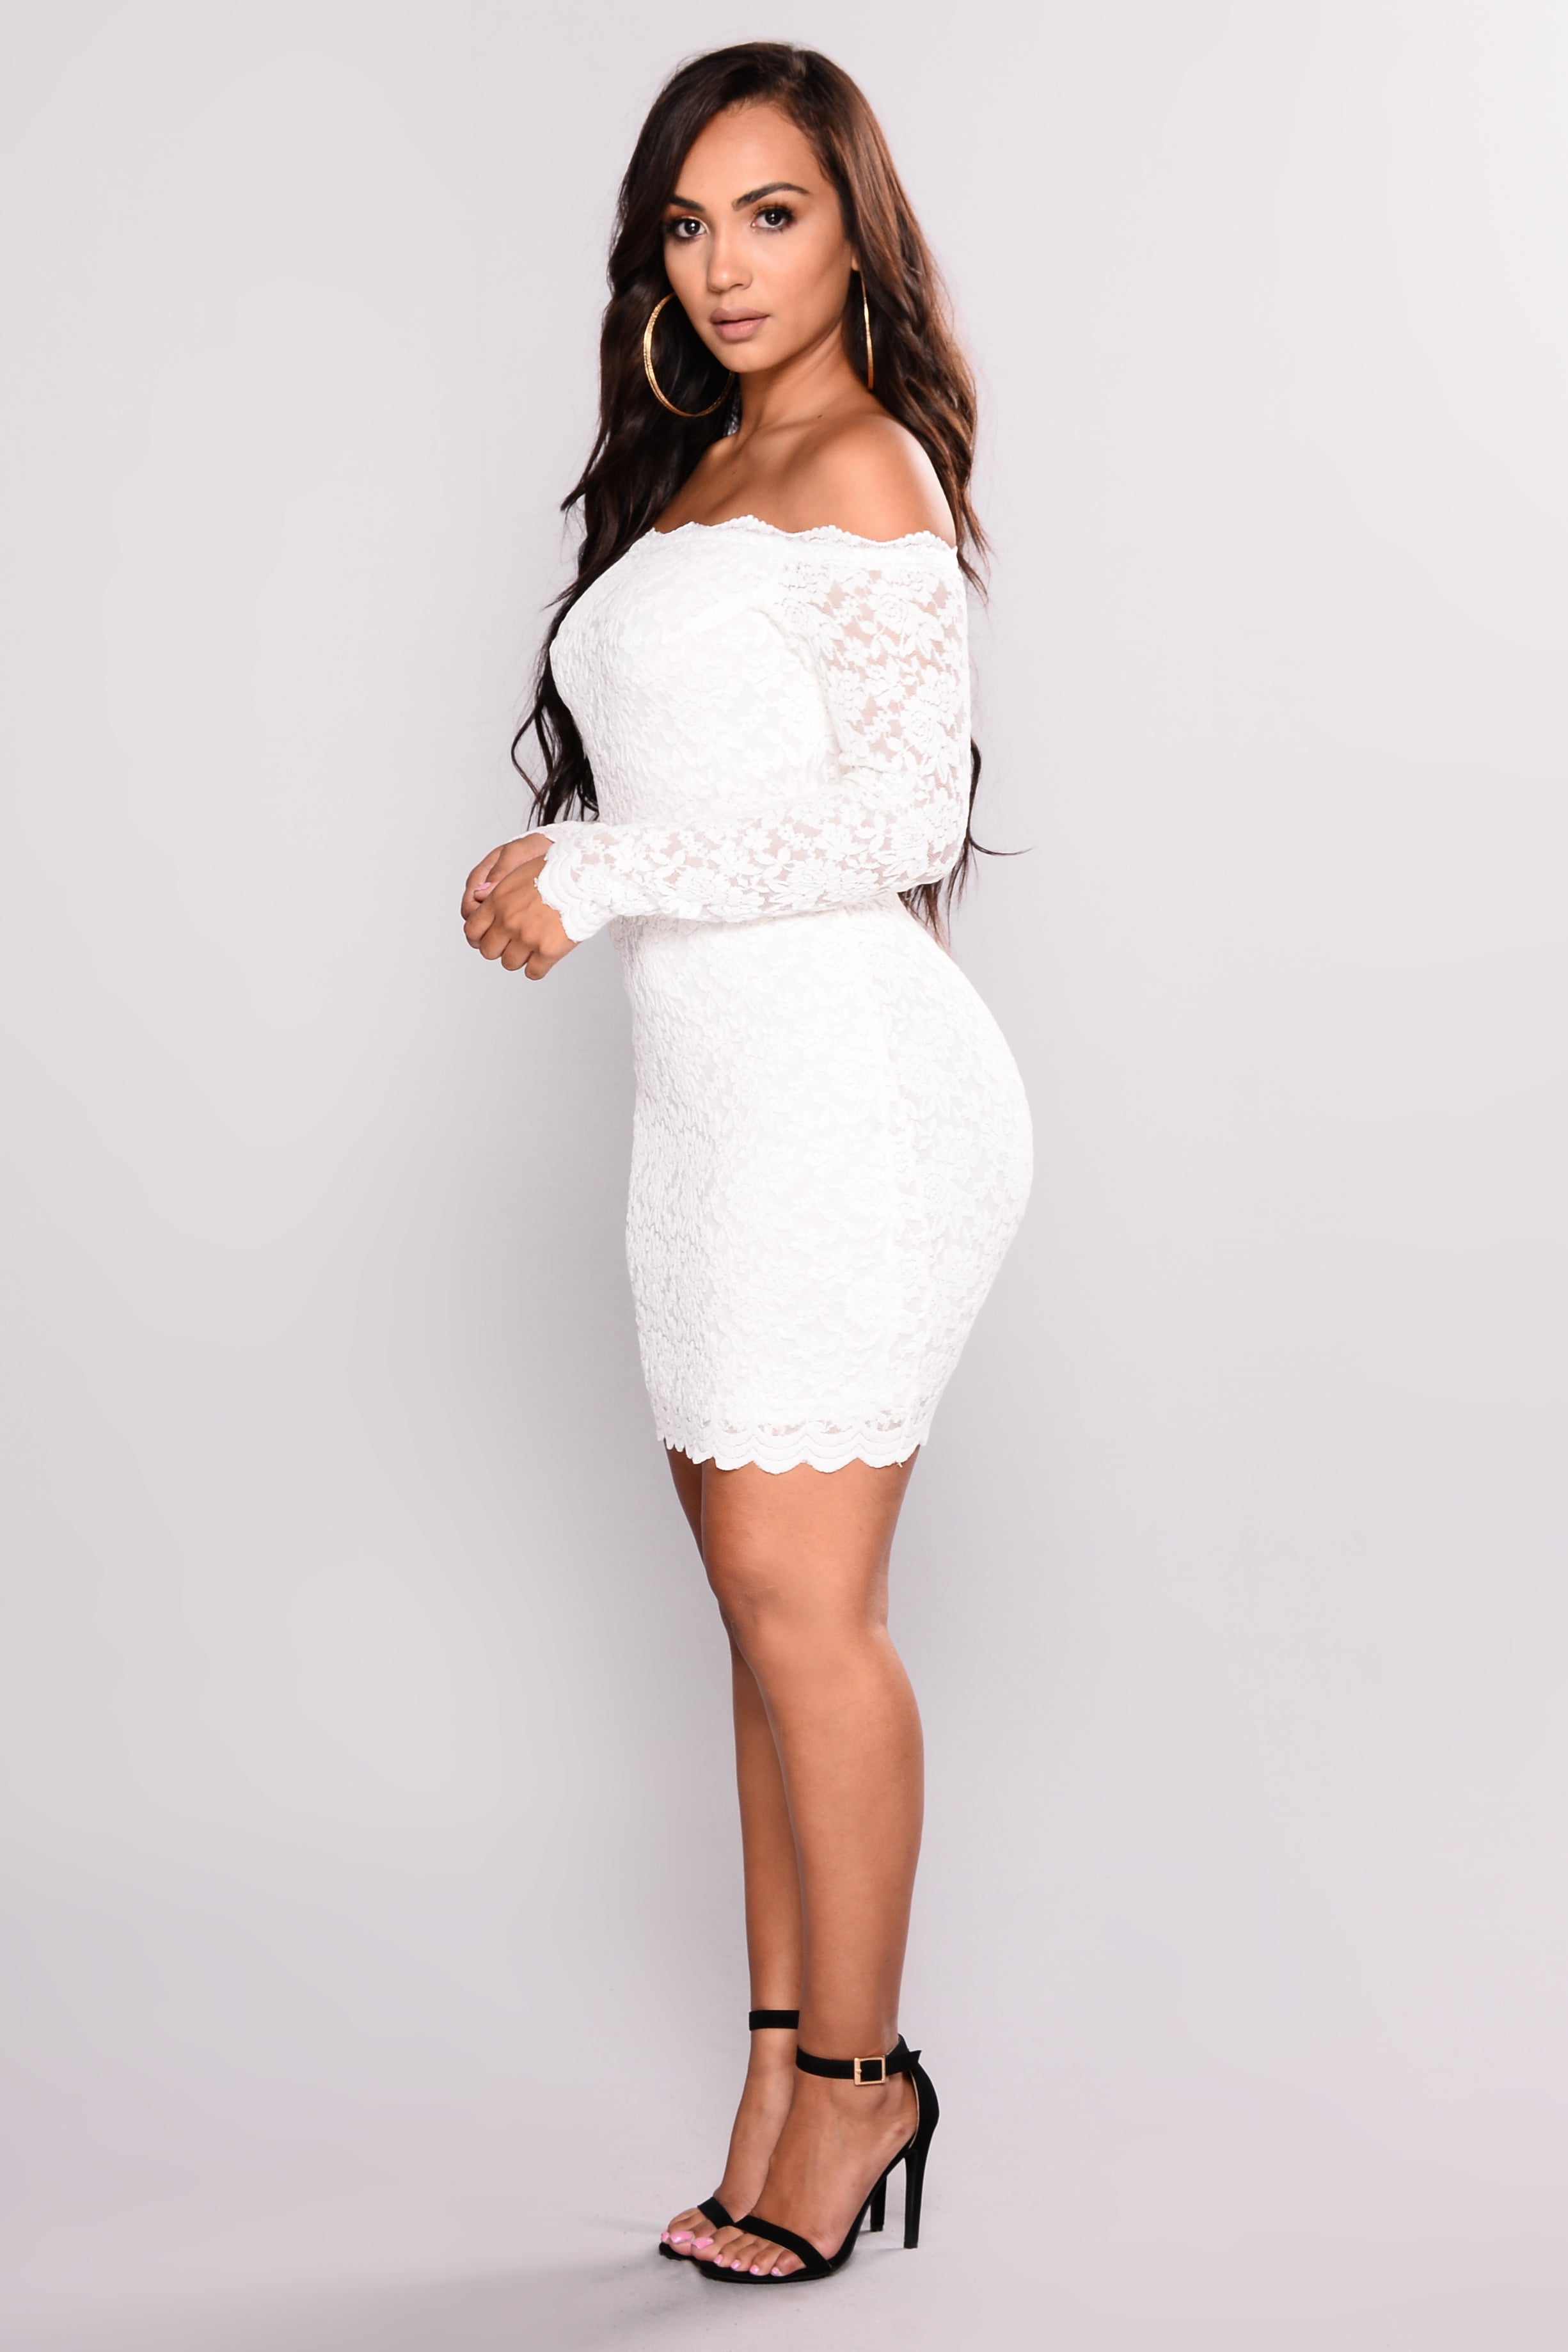 White dress with black lace at the waist